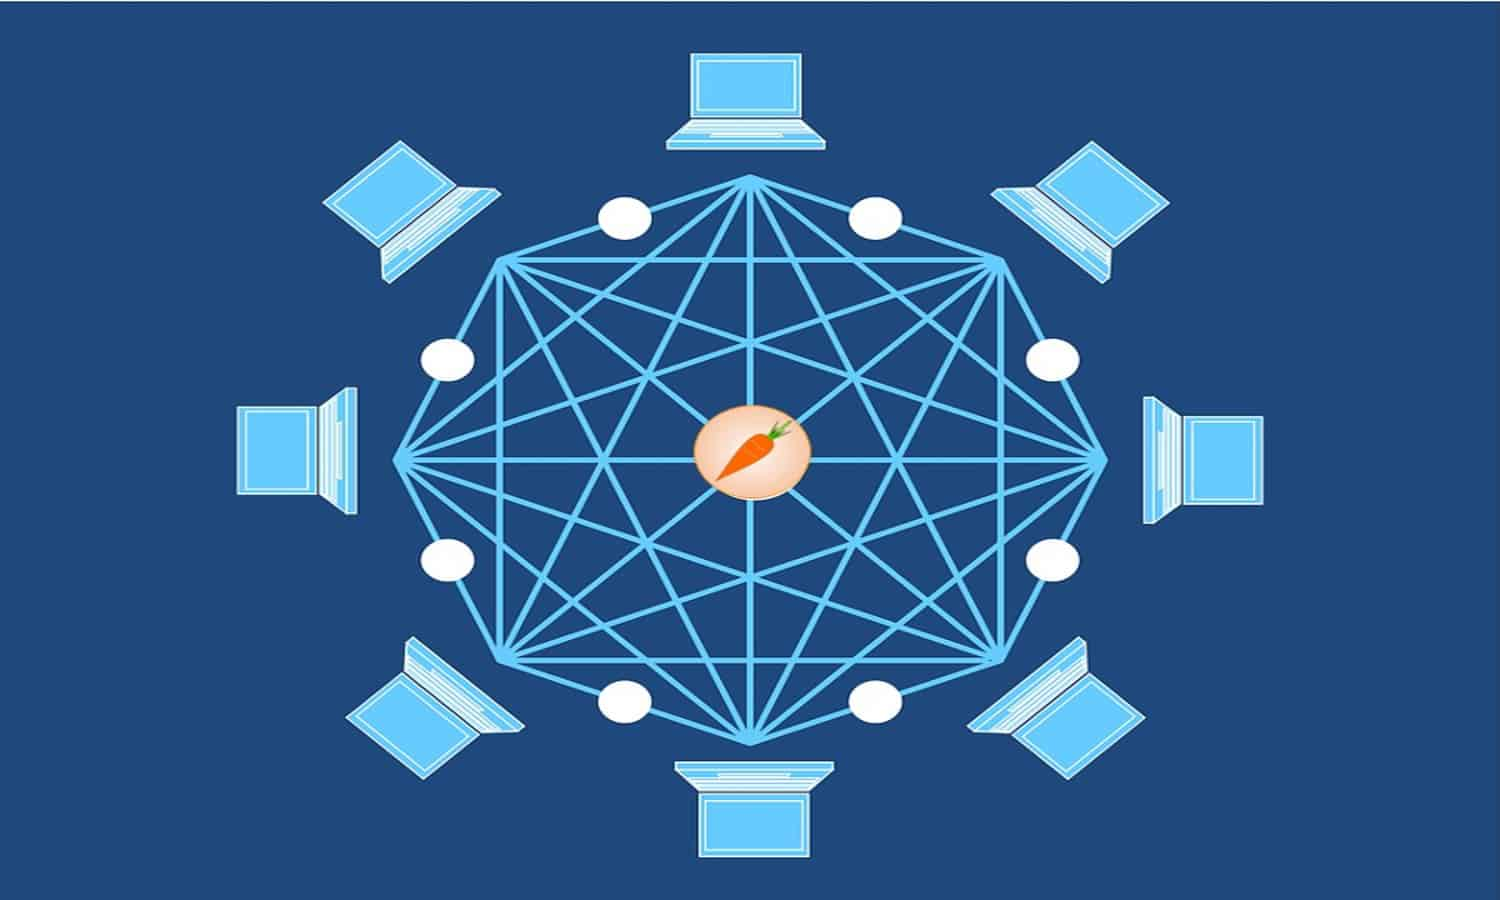 Initially thought of as a tool for banking, blockchain technology has continued to develop and new research shows it can increase sustainability, efficiency, and transparency in the food system.